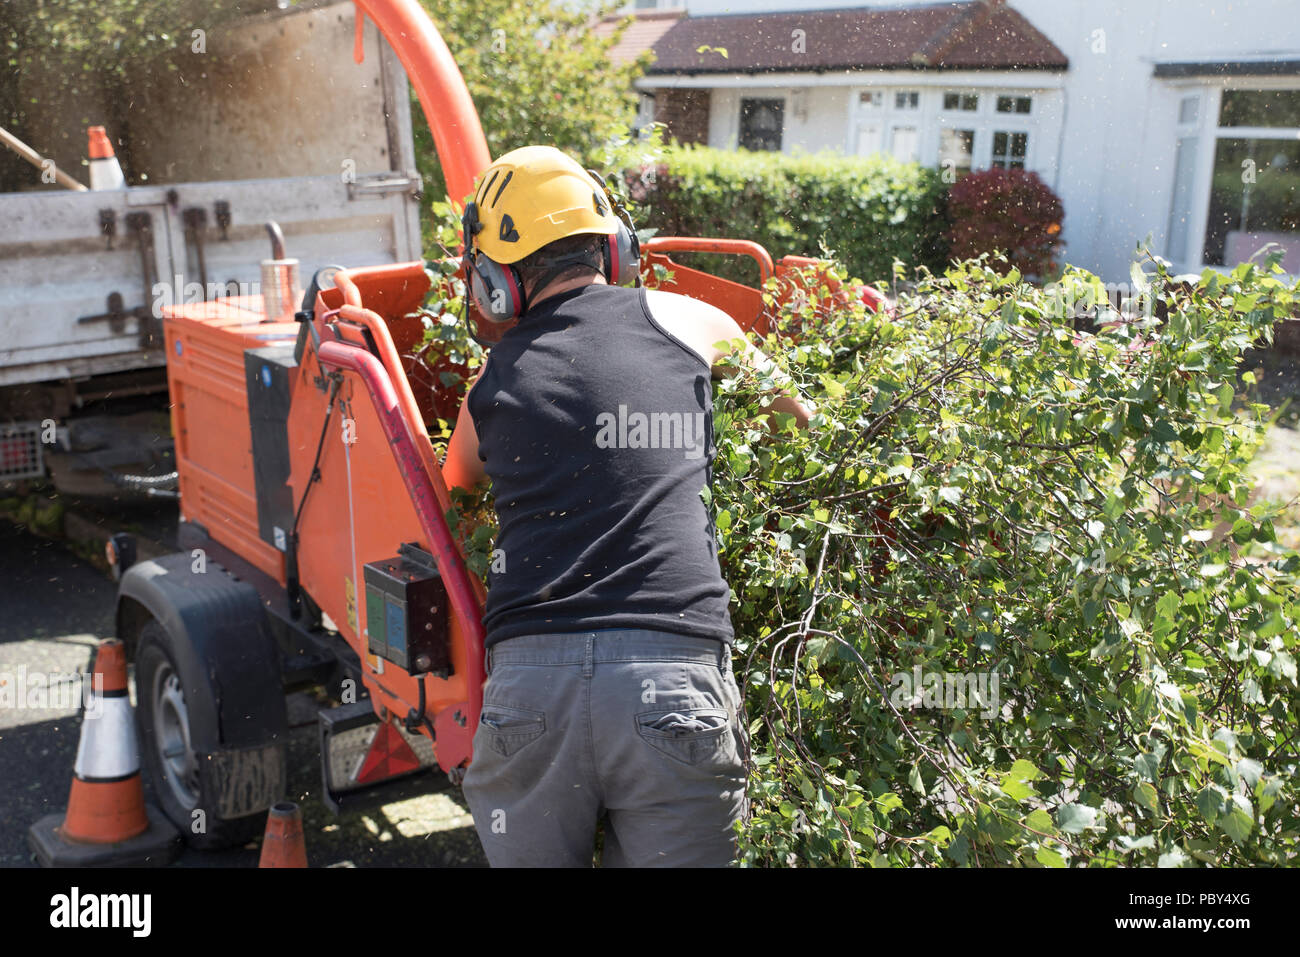 Male operative loading branches into an industrial wood chipping machine - Stock Image